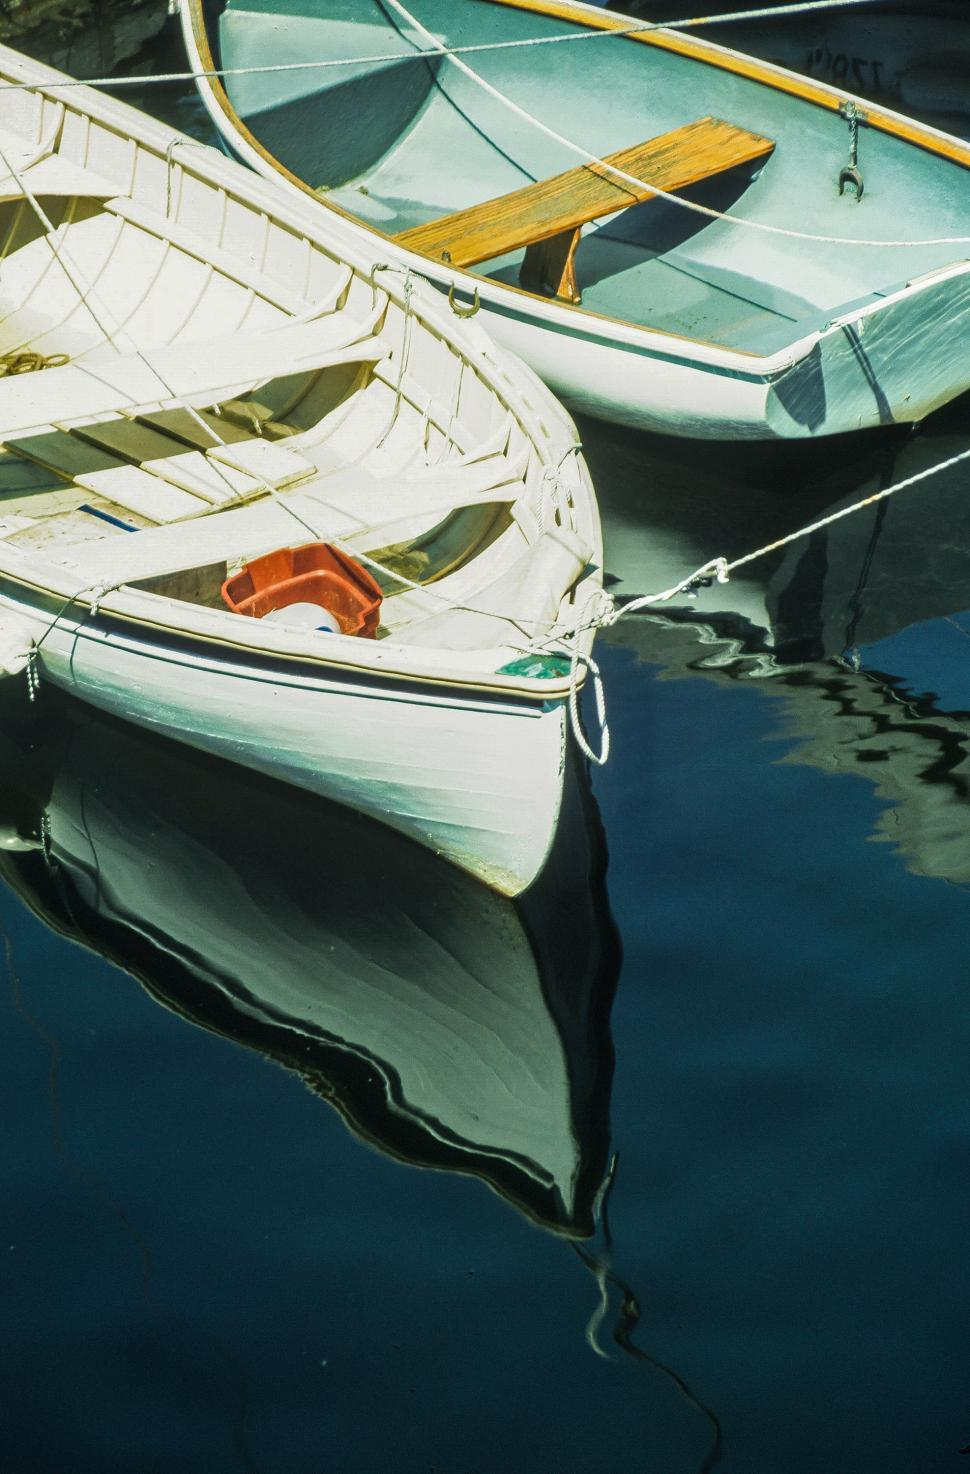 Download Free Stock Photo of Rowboats